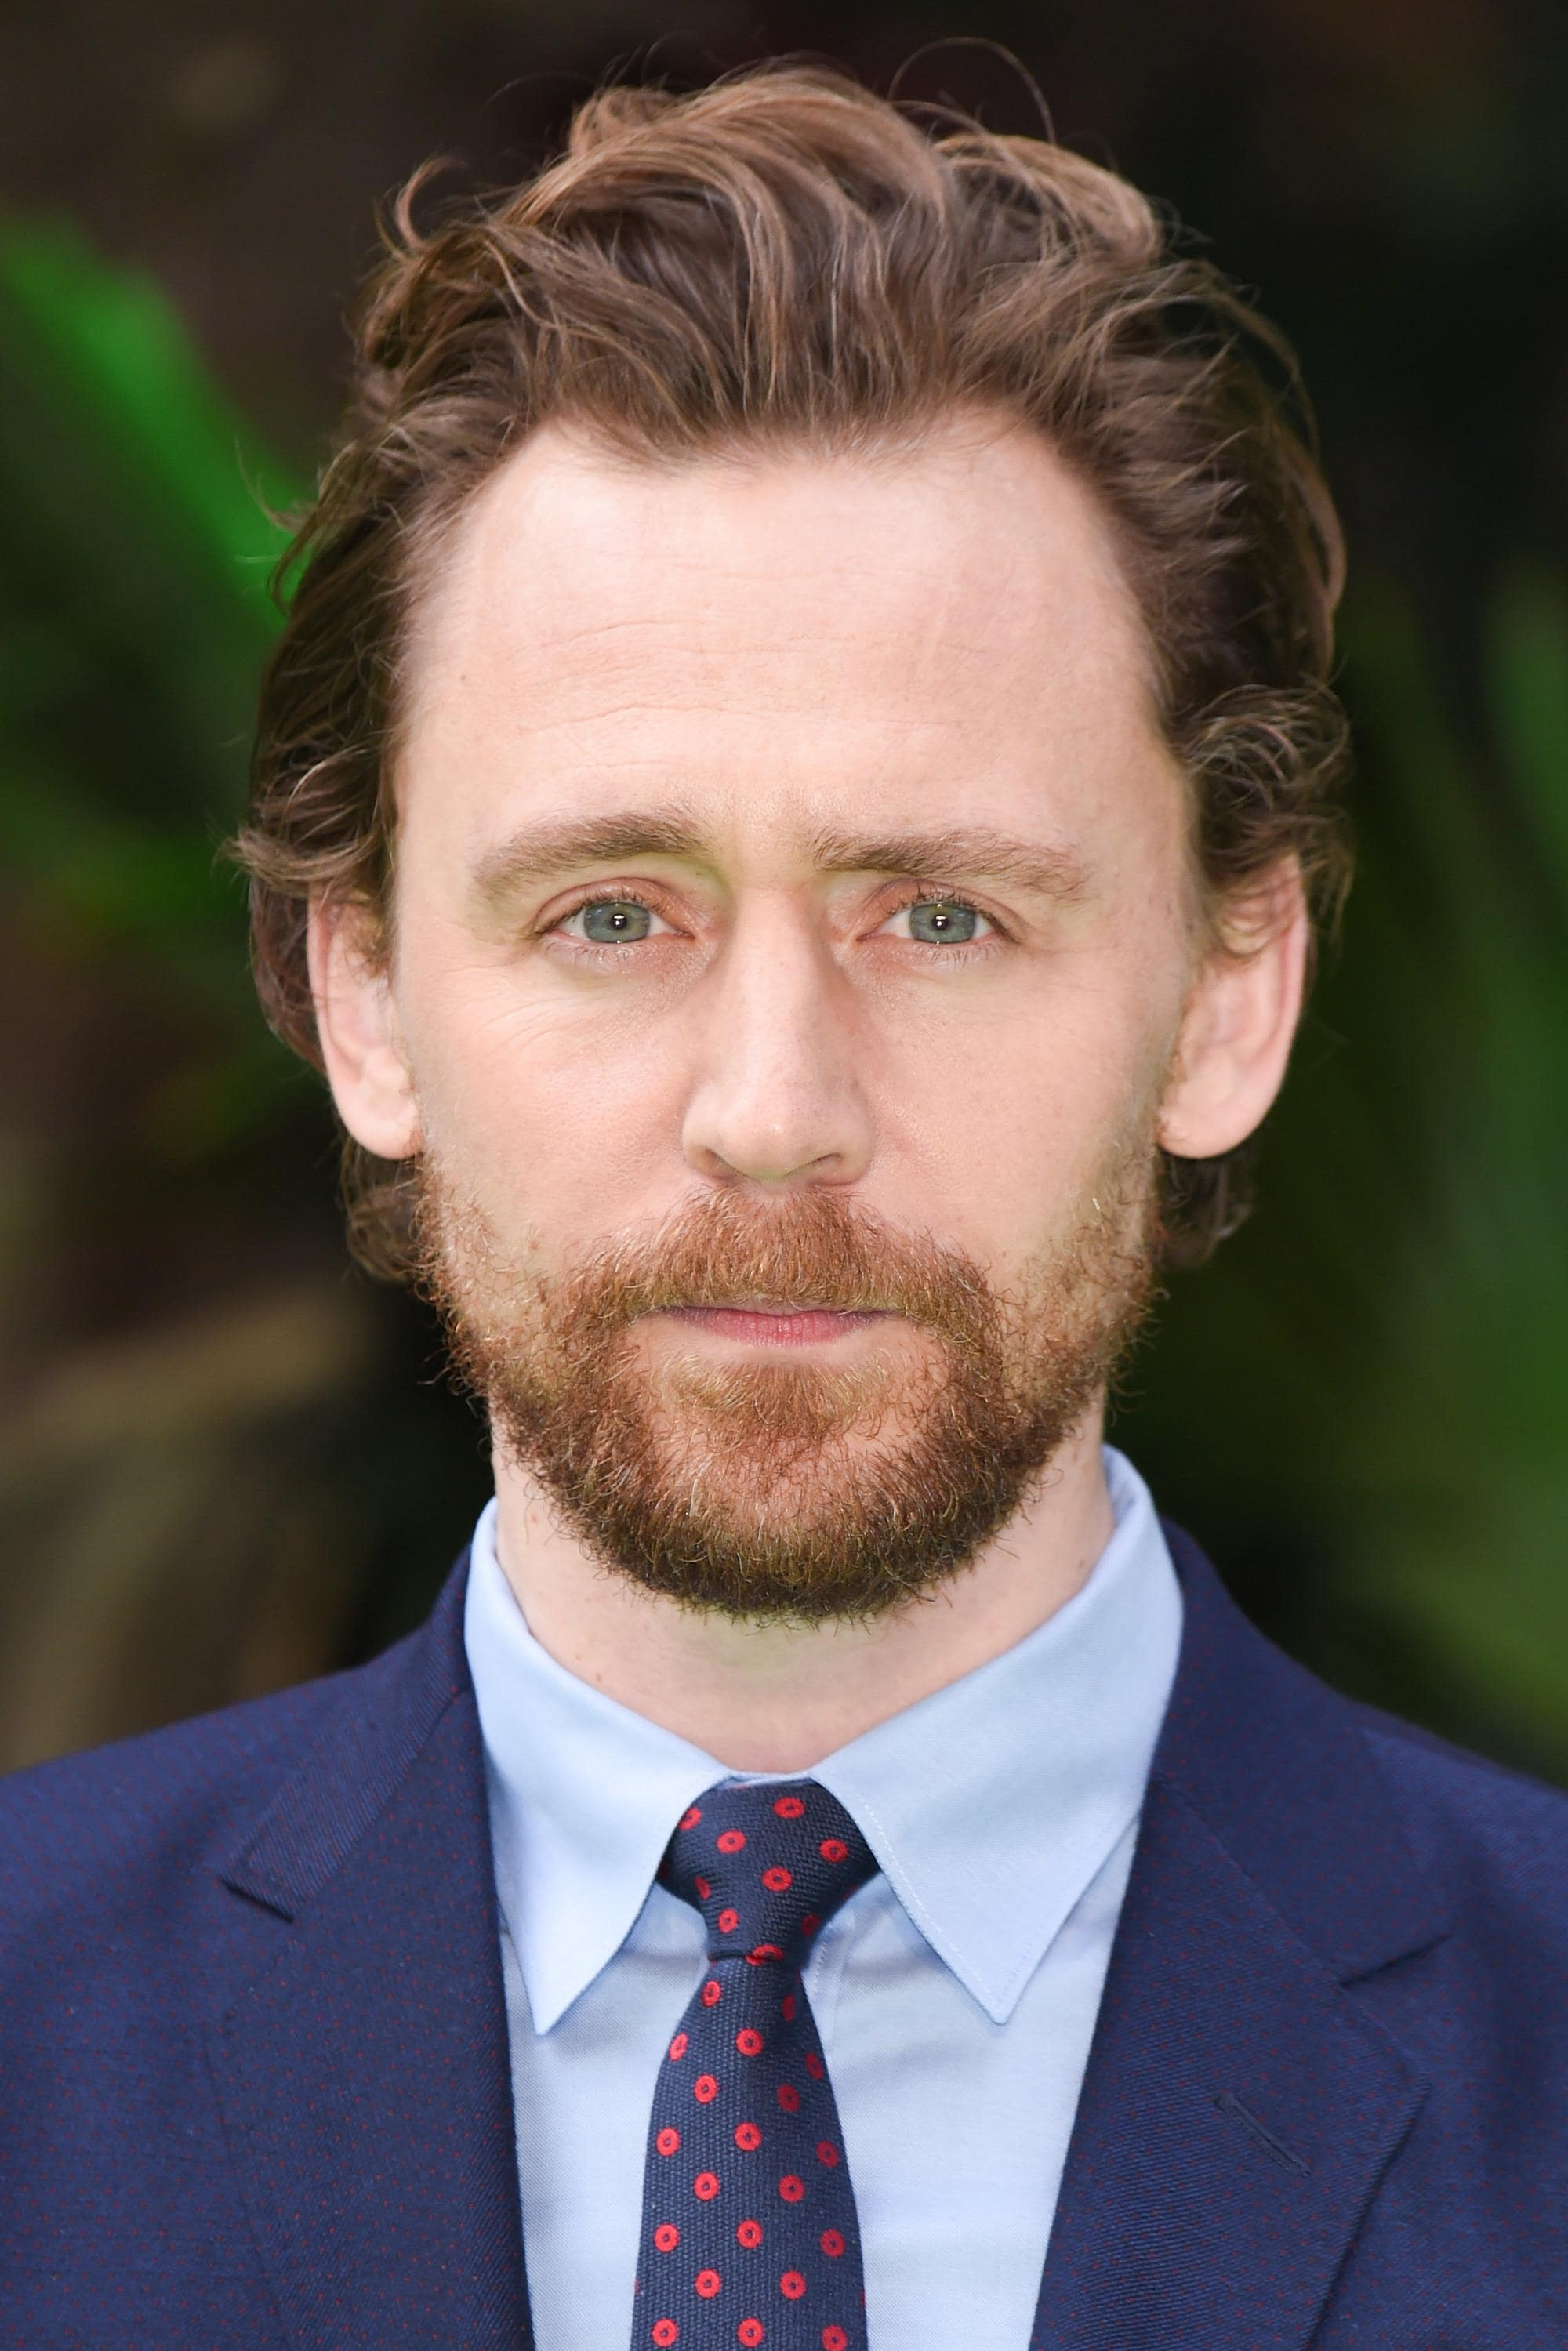 actor tom hiddleston at the early man world premiere with new rugged beard and longer hair